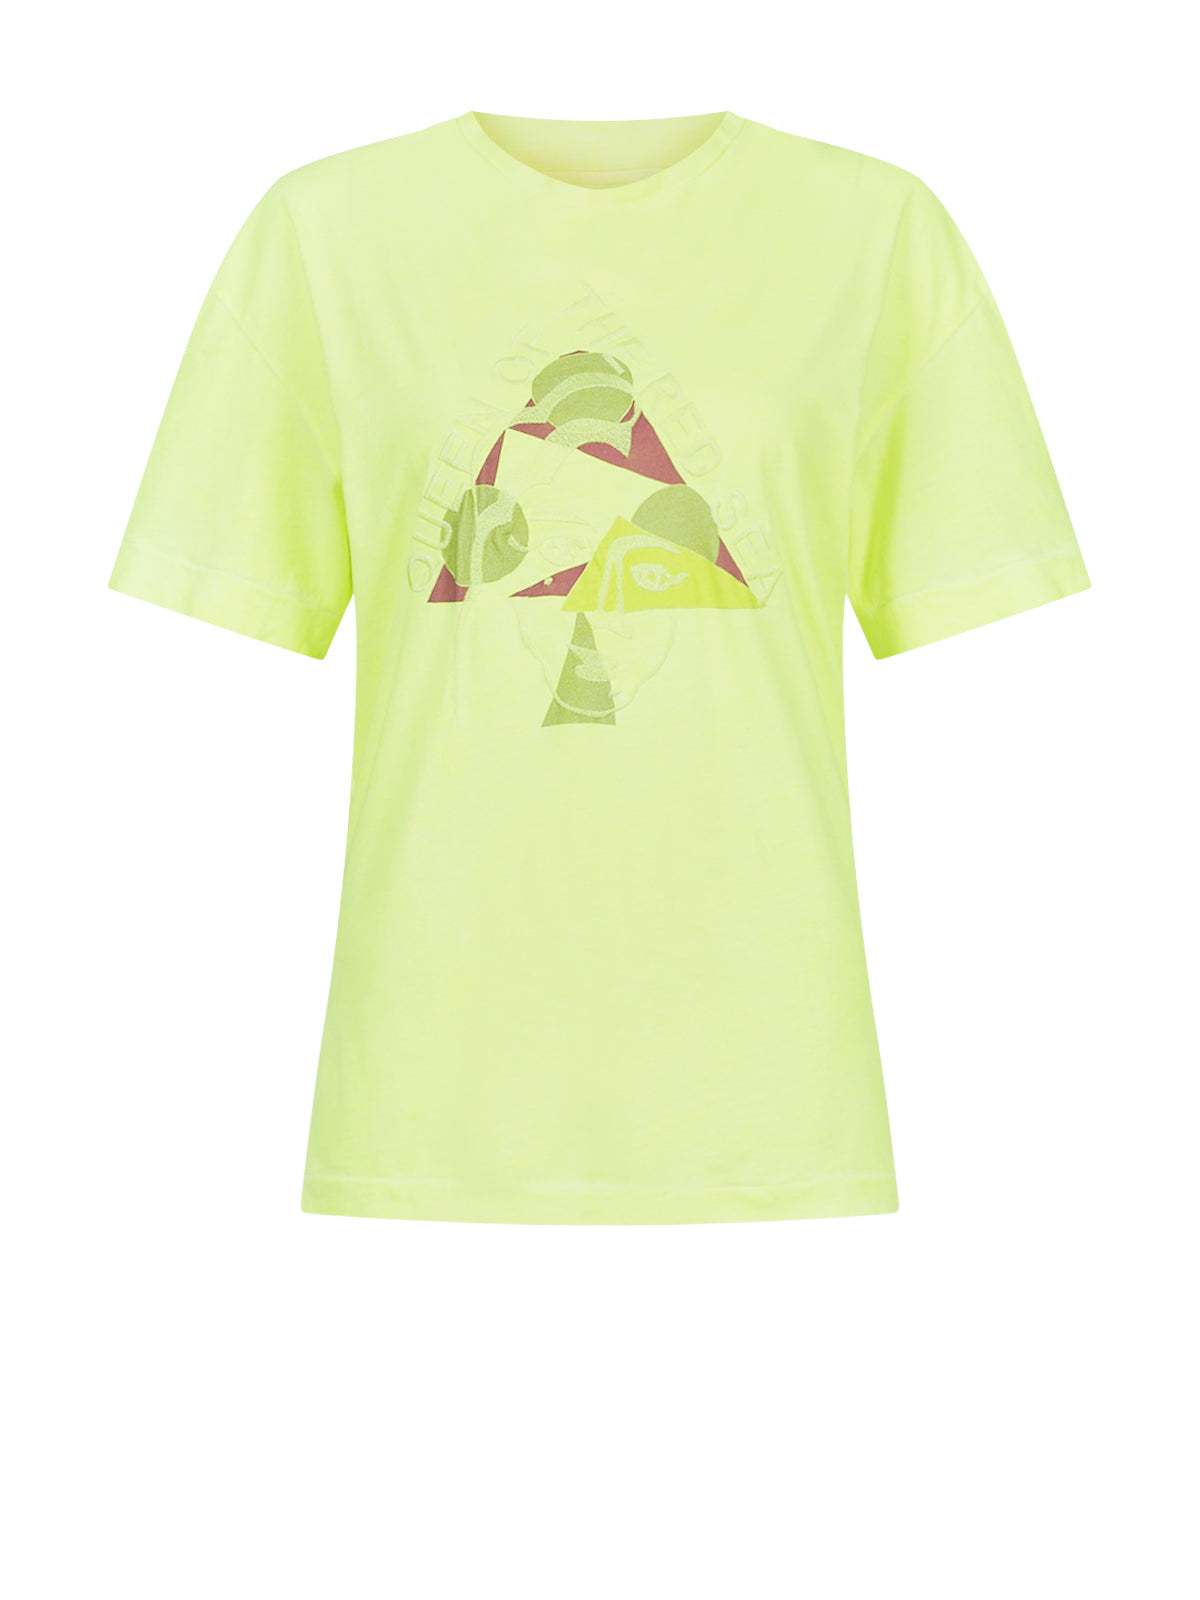 QUEEN T-SHIRT YELLOW